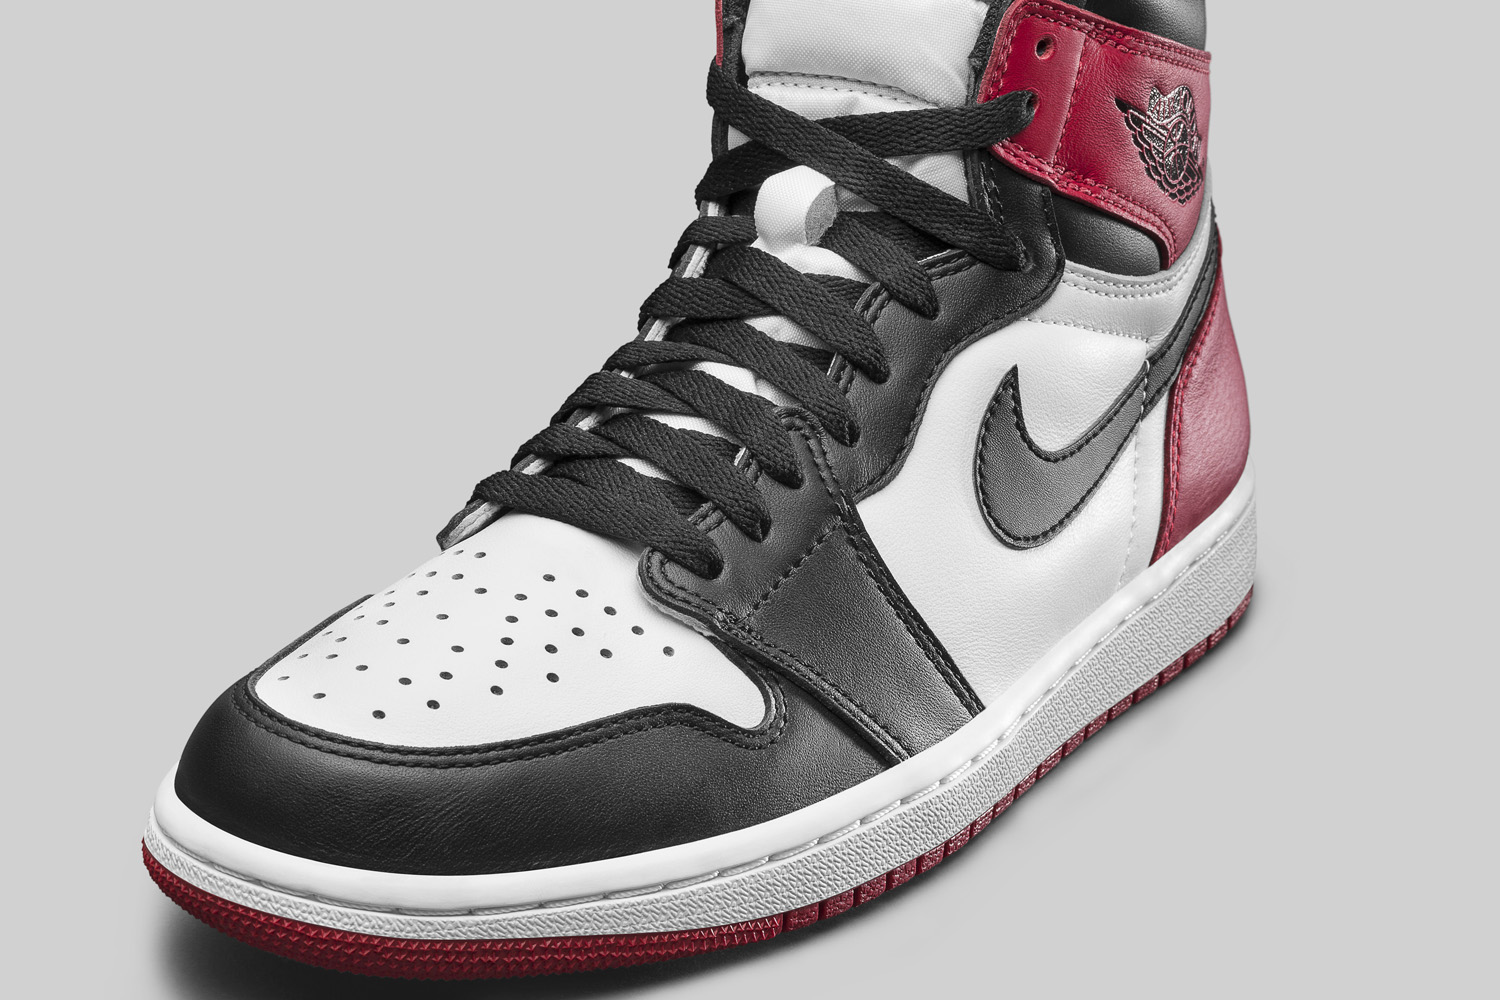 Air Jordan 1 Black Toe 555088-125 Toebox